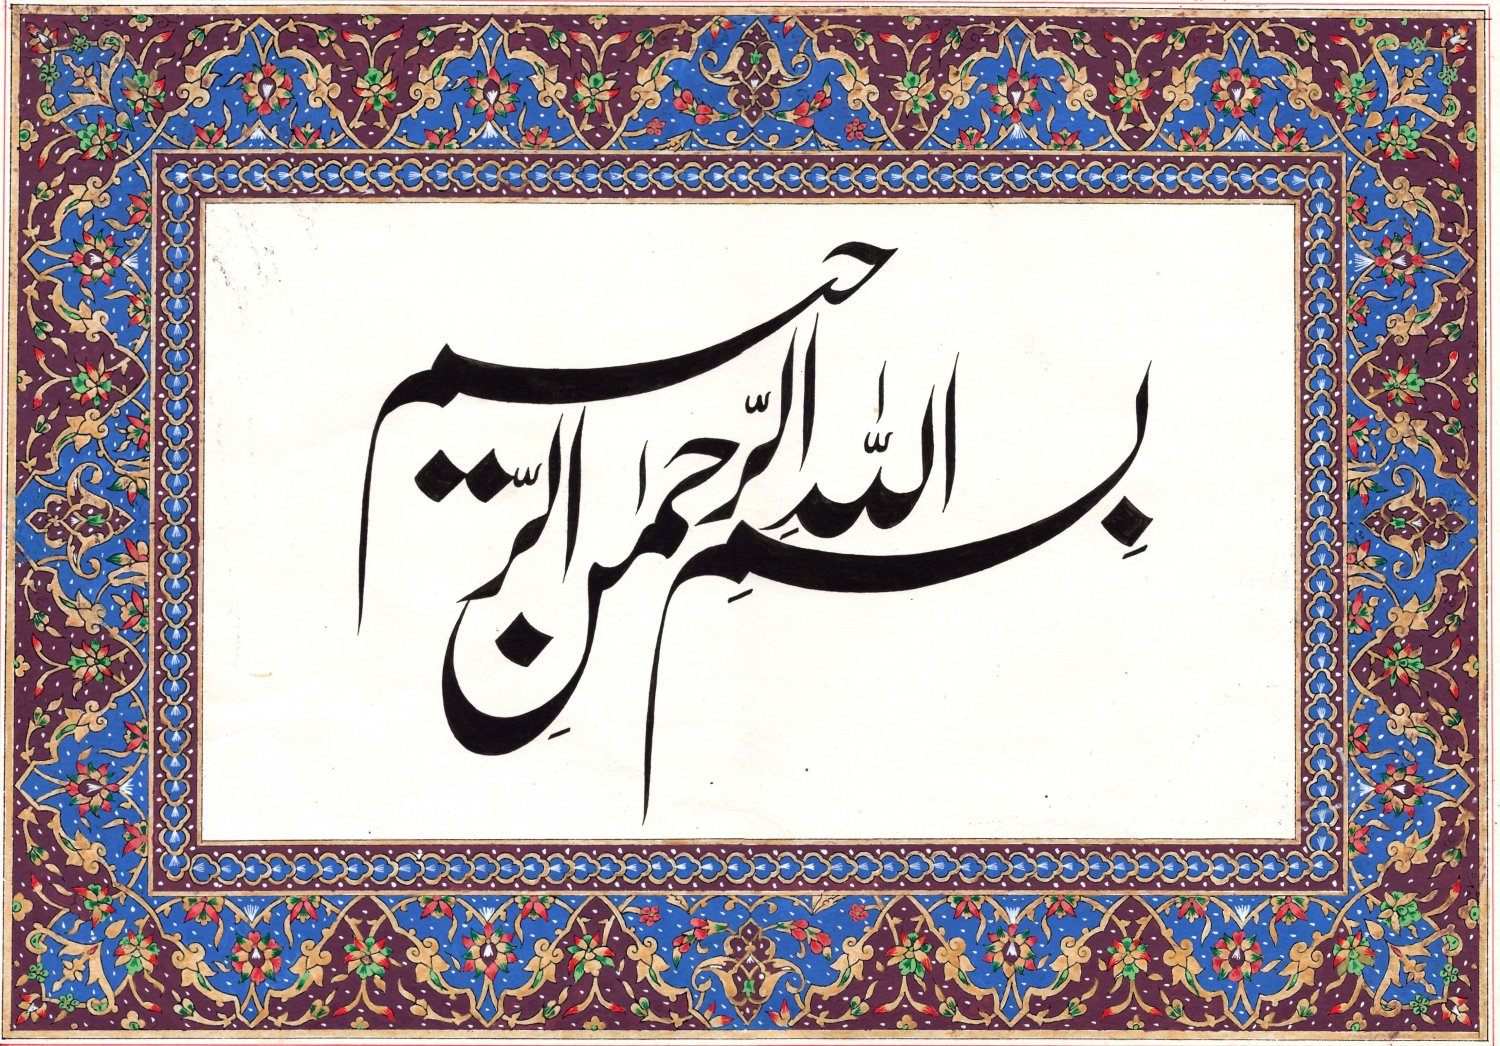 Islamic Tazhib Calligraphy Allah Art Handmade Holy Quran Muslim Decor Painting